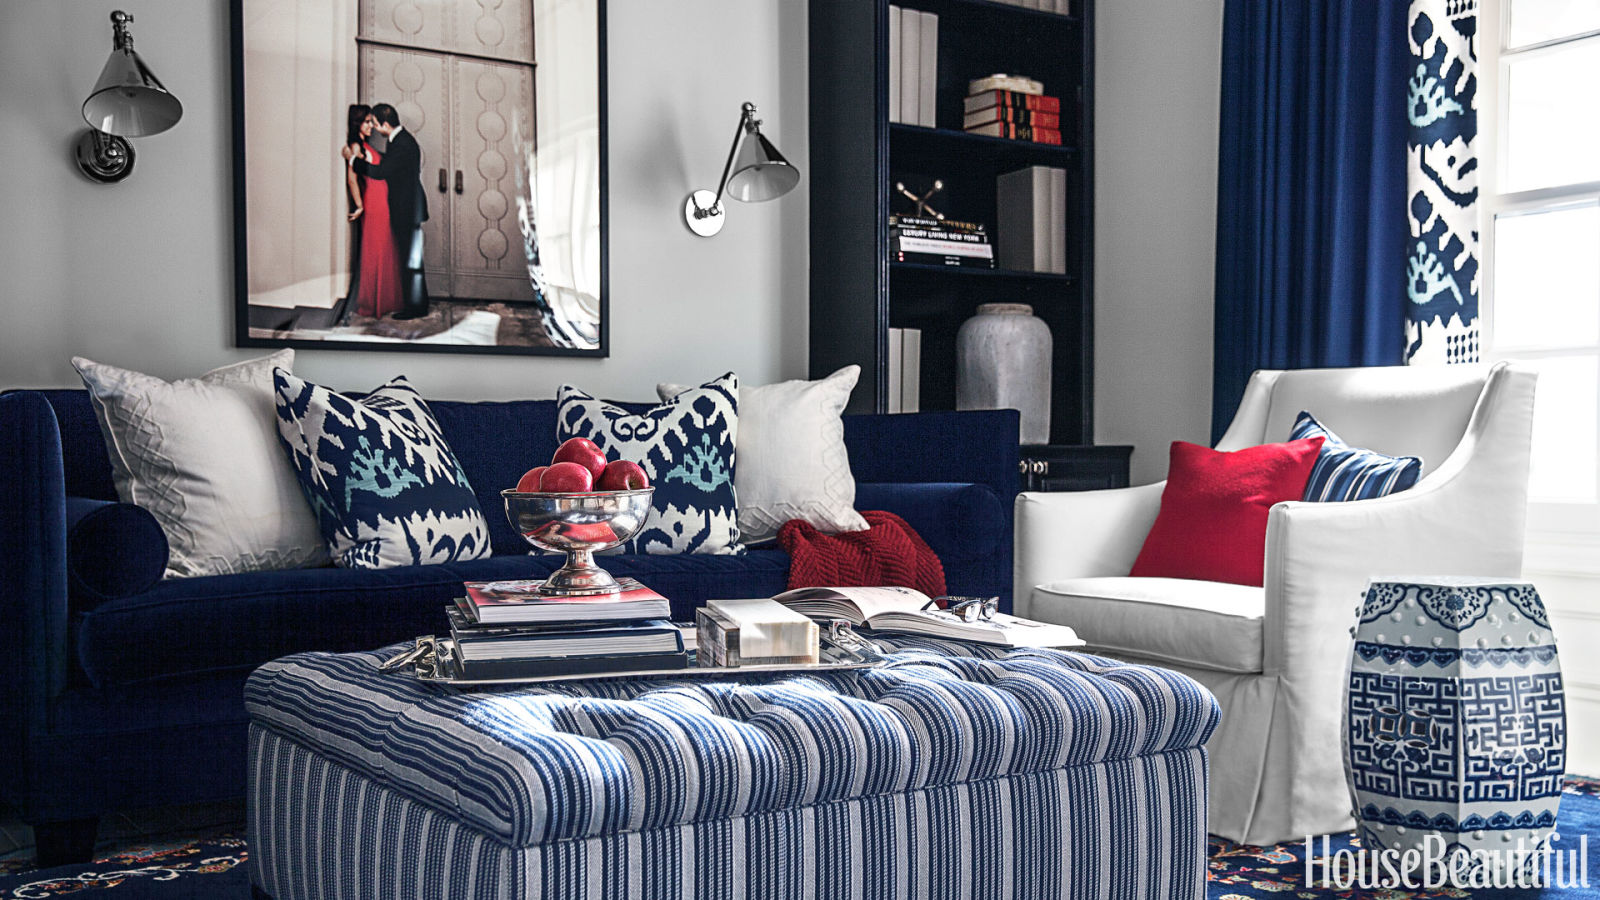 copy cat chic room redo red white and blue living room copycatchic. Black Bedroom Furniture Sets. Home Design Ideas